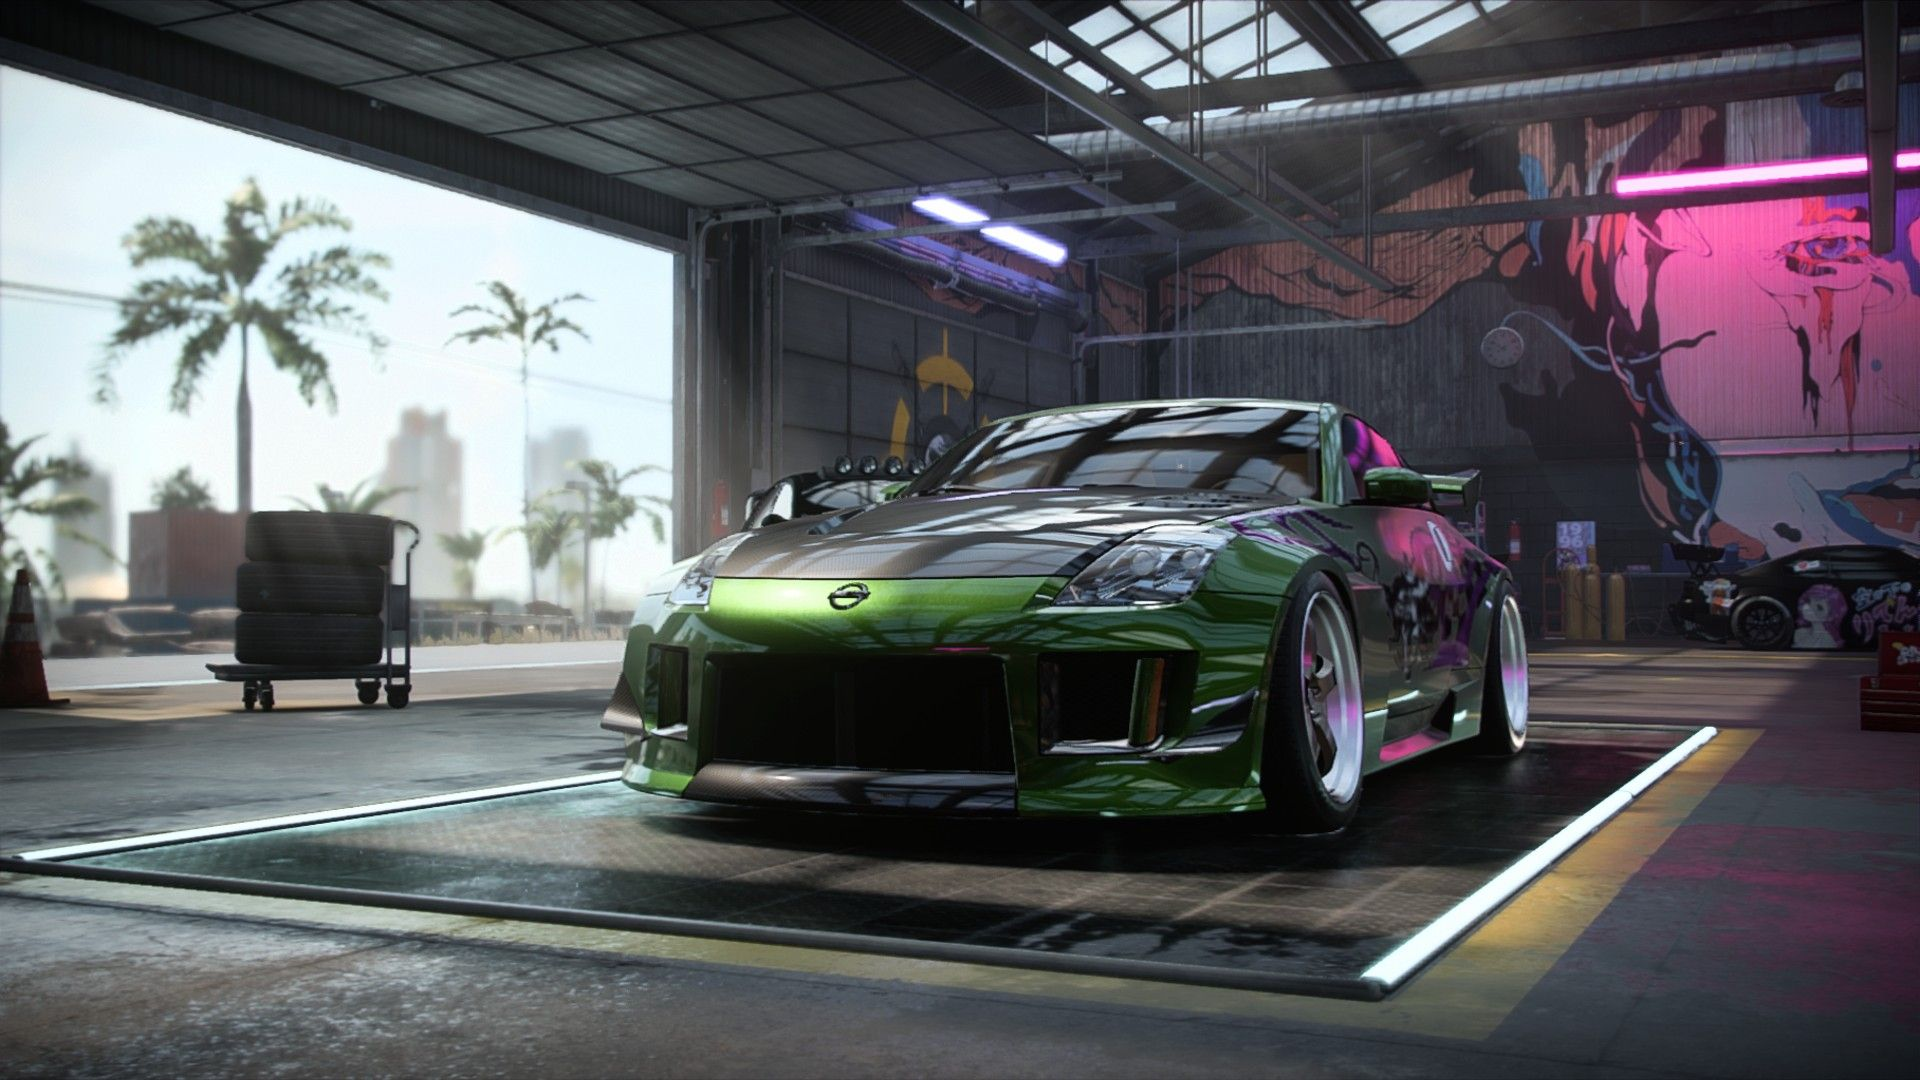 Nissan 350z Rachel S From Nfsu2 2003 Coupe From Need For Speed Heat Nissan 350z Need For Speed Heat Need For Speed Cars